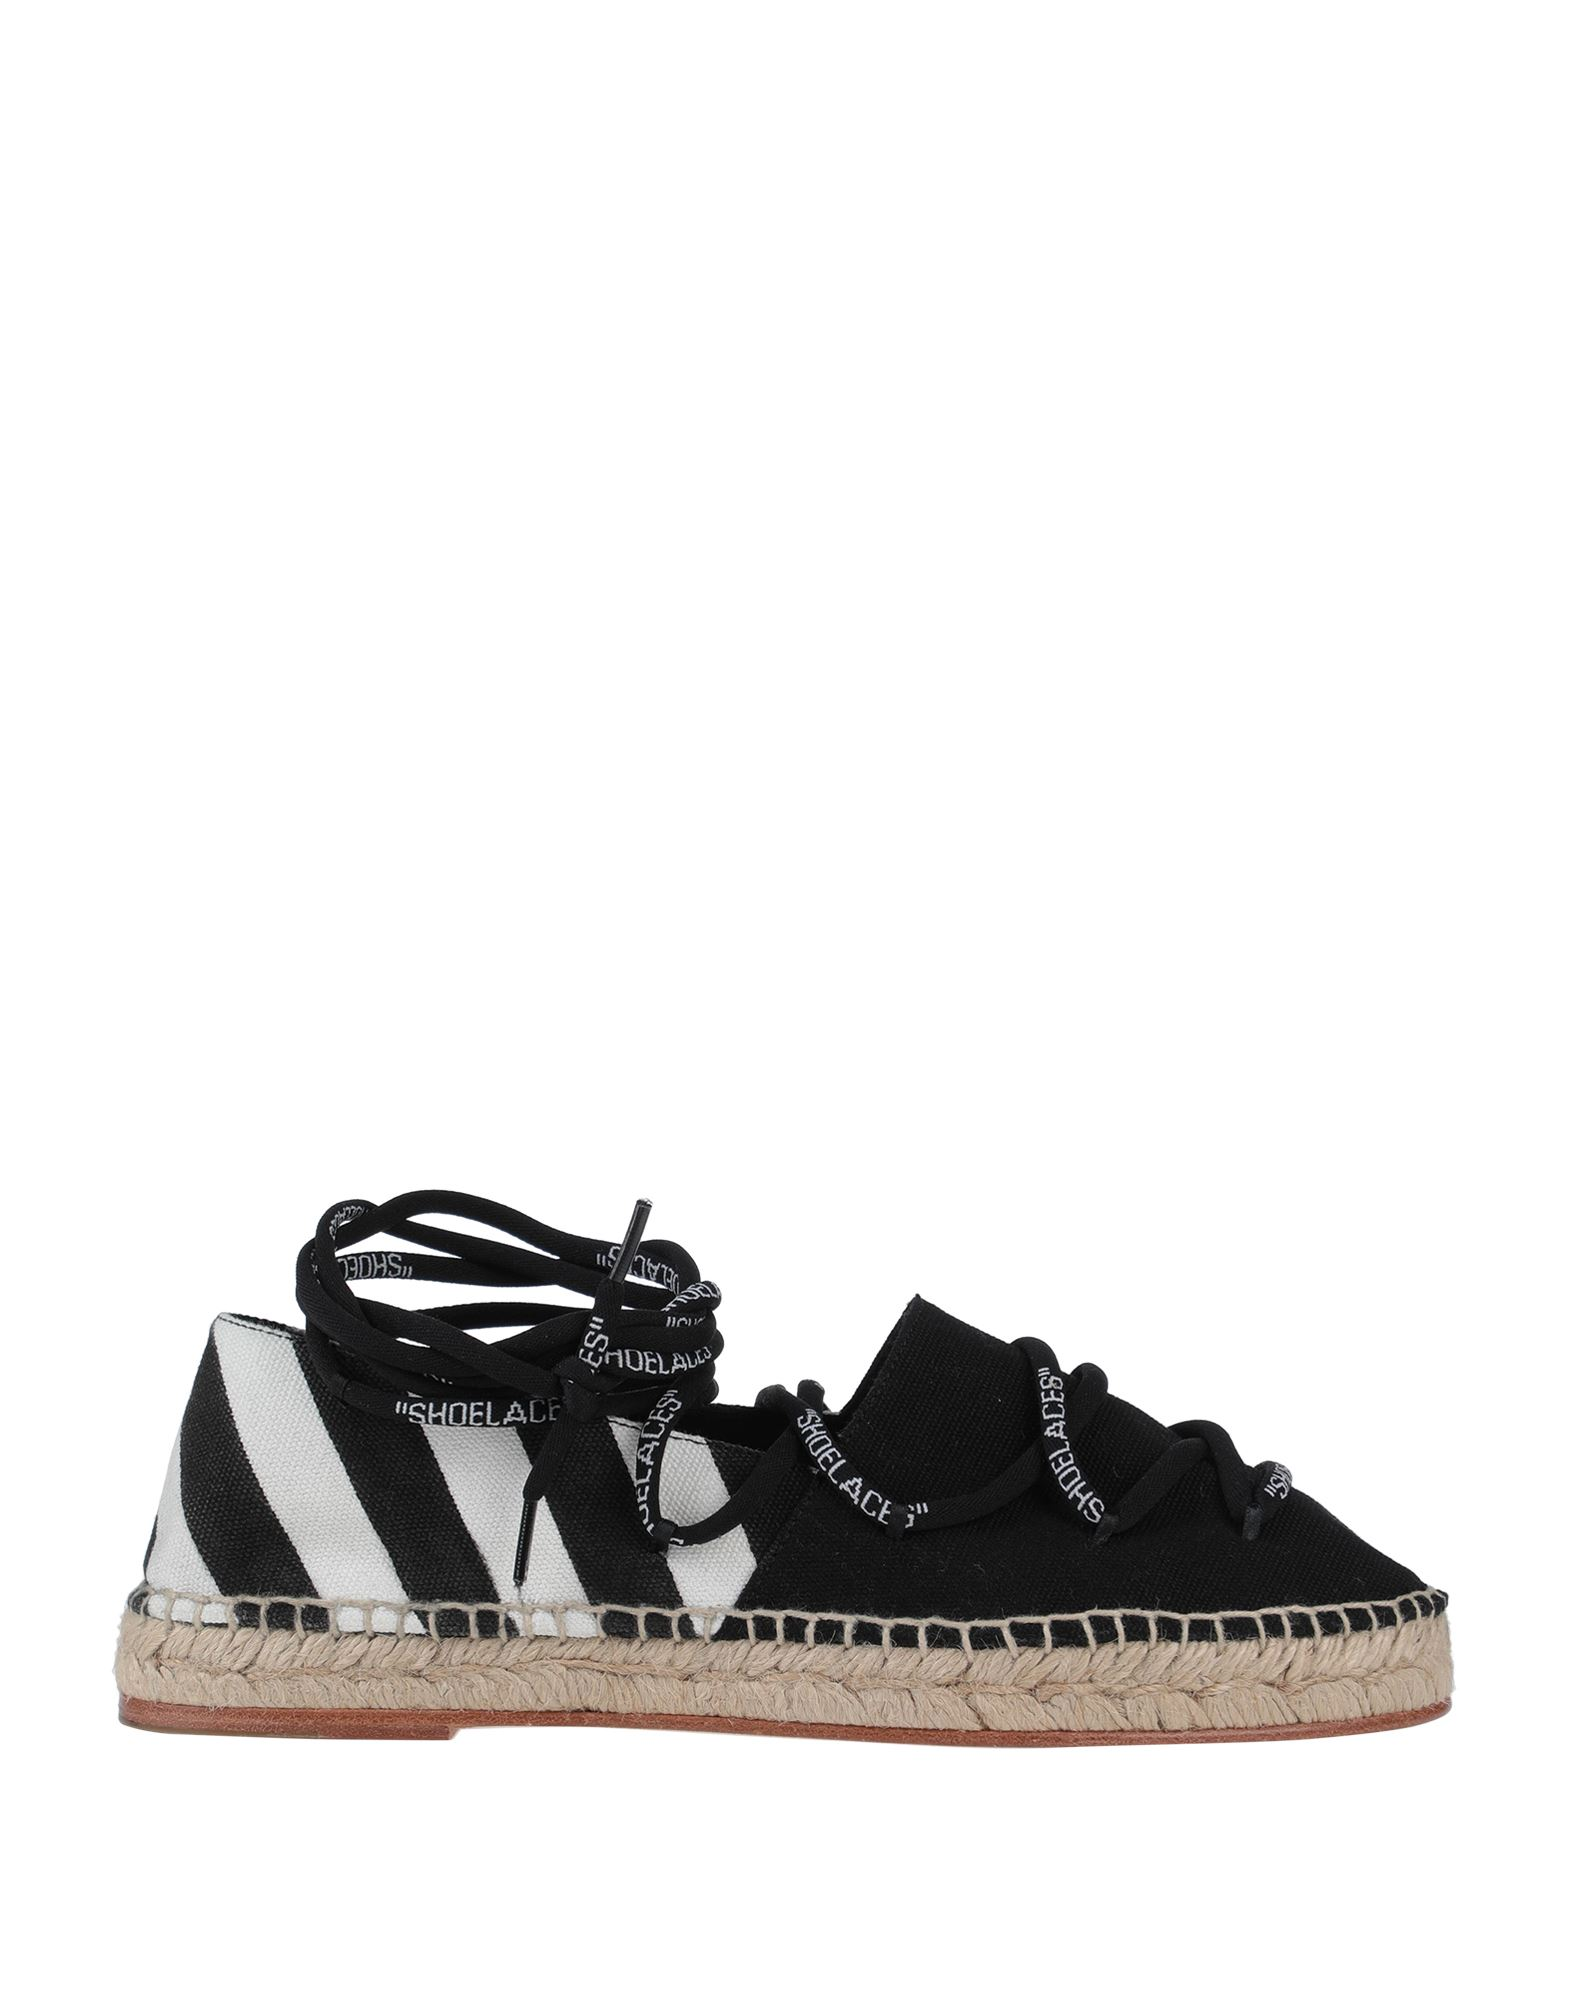 OFF-WHITE™ Espadrilles. canvas, laces, logo, stripes, round toeline, flat, leather lining, leather sole, contains non-textile parts of animal origin, small sized. Textile fibers